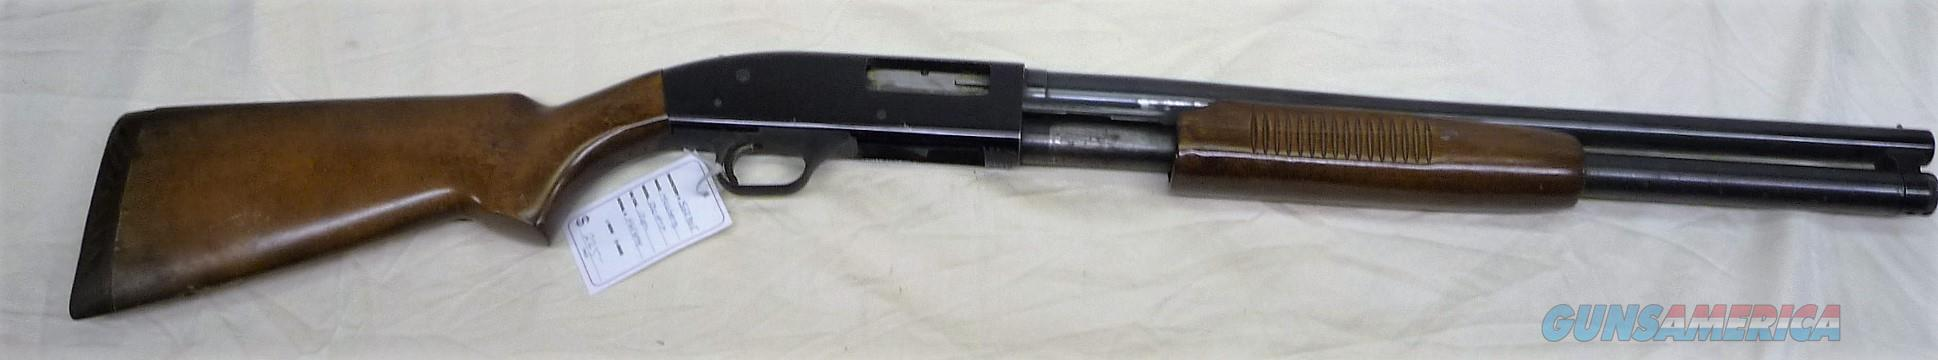 Mossberg 500 ATP .12GA   Guns > Shotguns > Mossberg Shotguns > Pump > Tactical